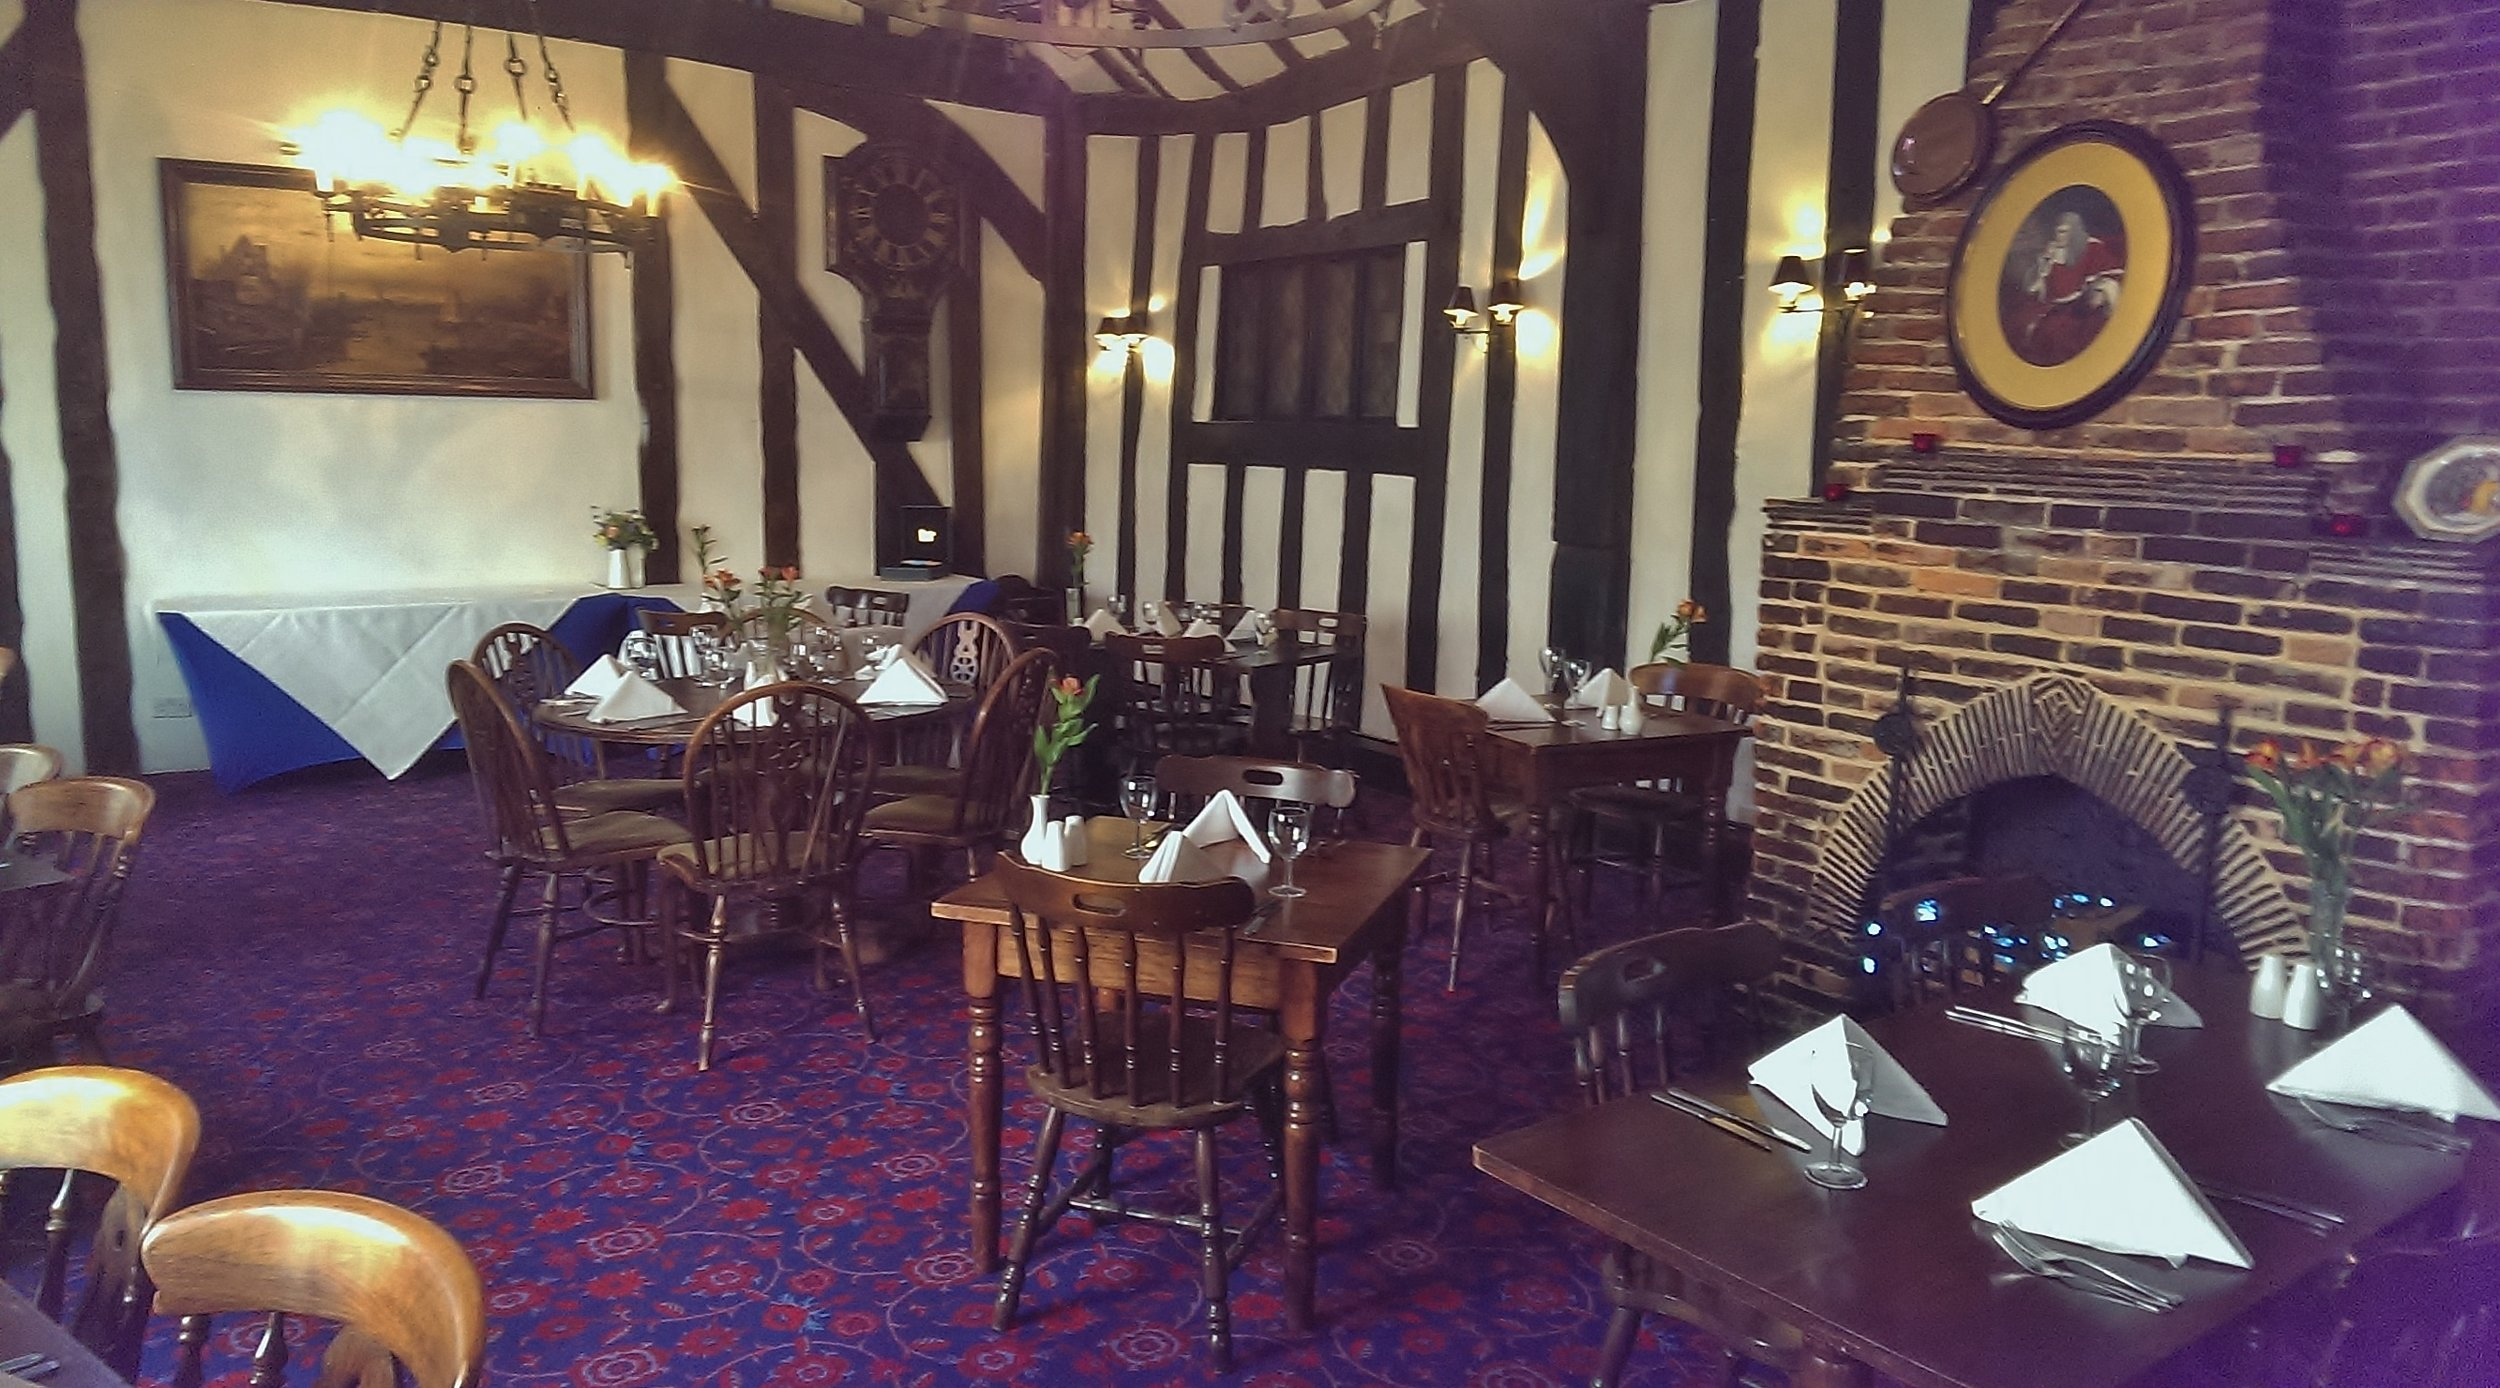 Dining room at the Red Lion